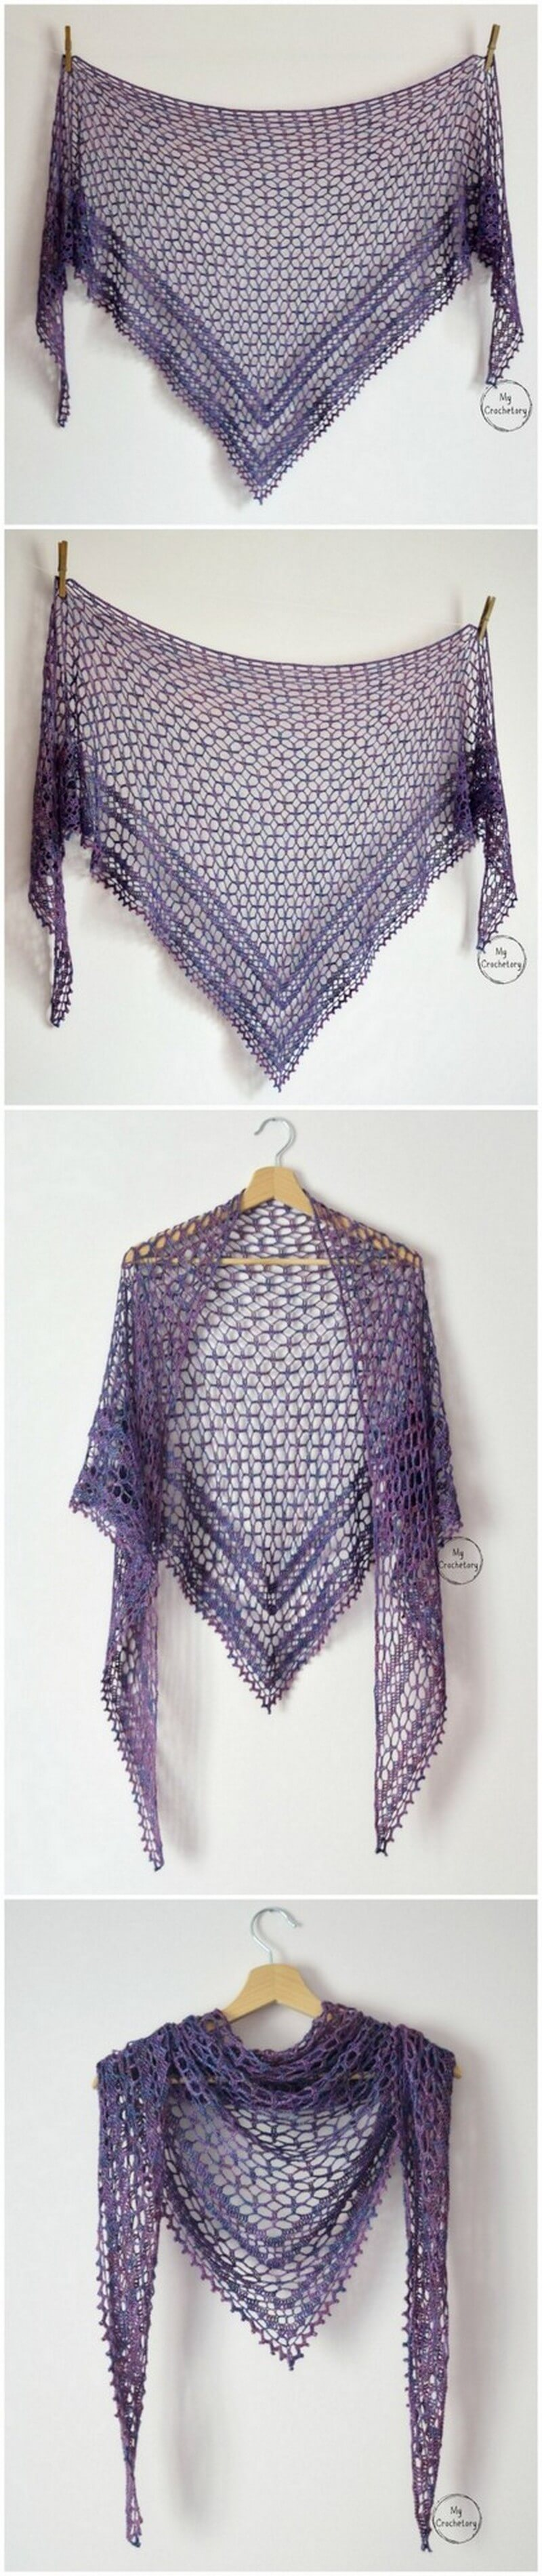 Crochet Shawl Pattern (13)